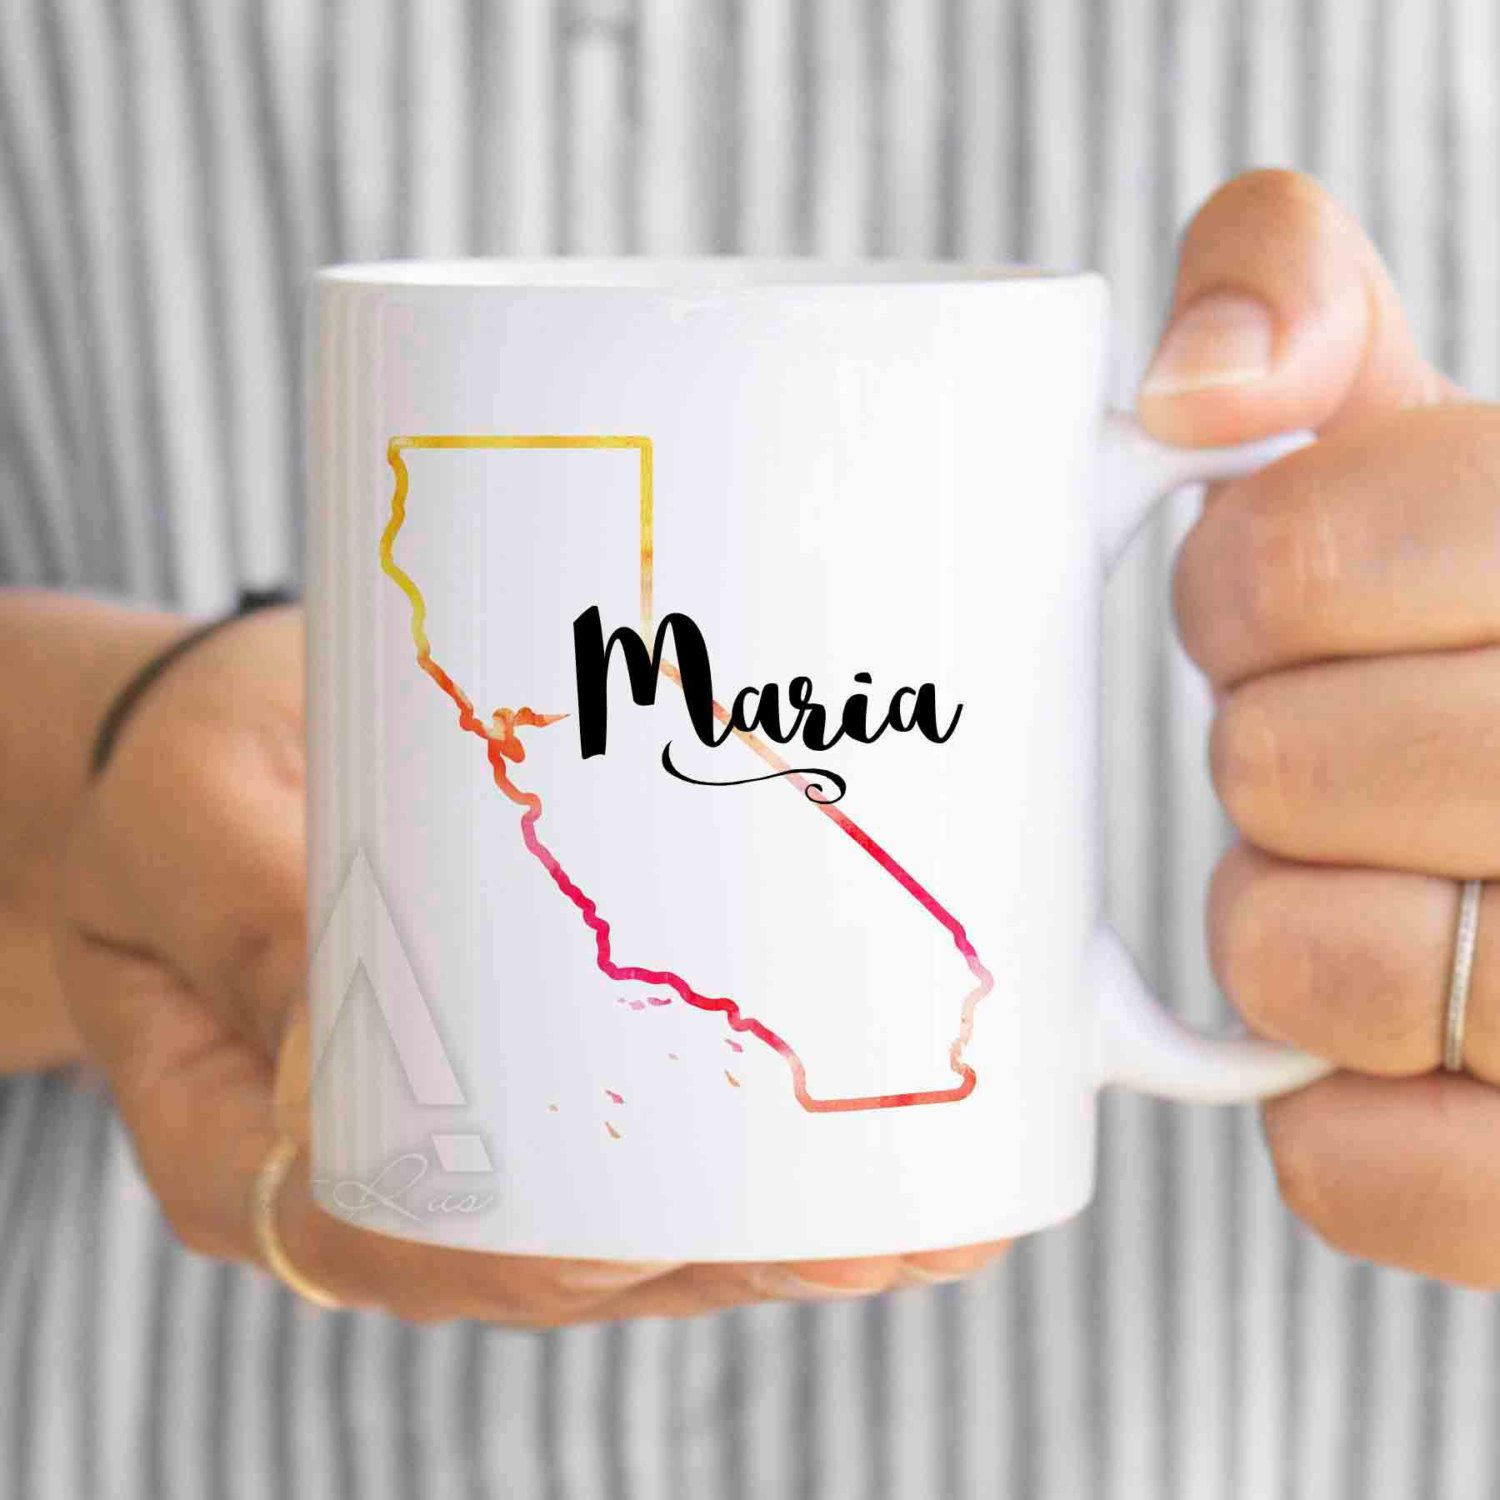 Personalized Gift For Coworker California Coffee Mug Goodbye Boss Going Away Farewell Mu279 By Artruss On Etsy